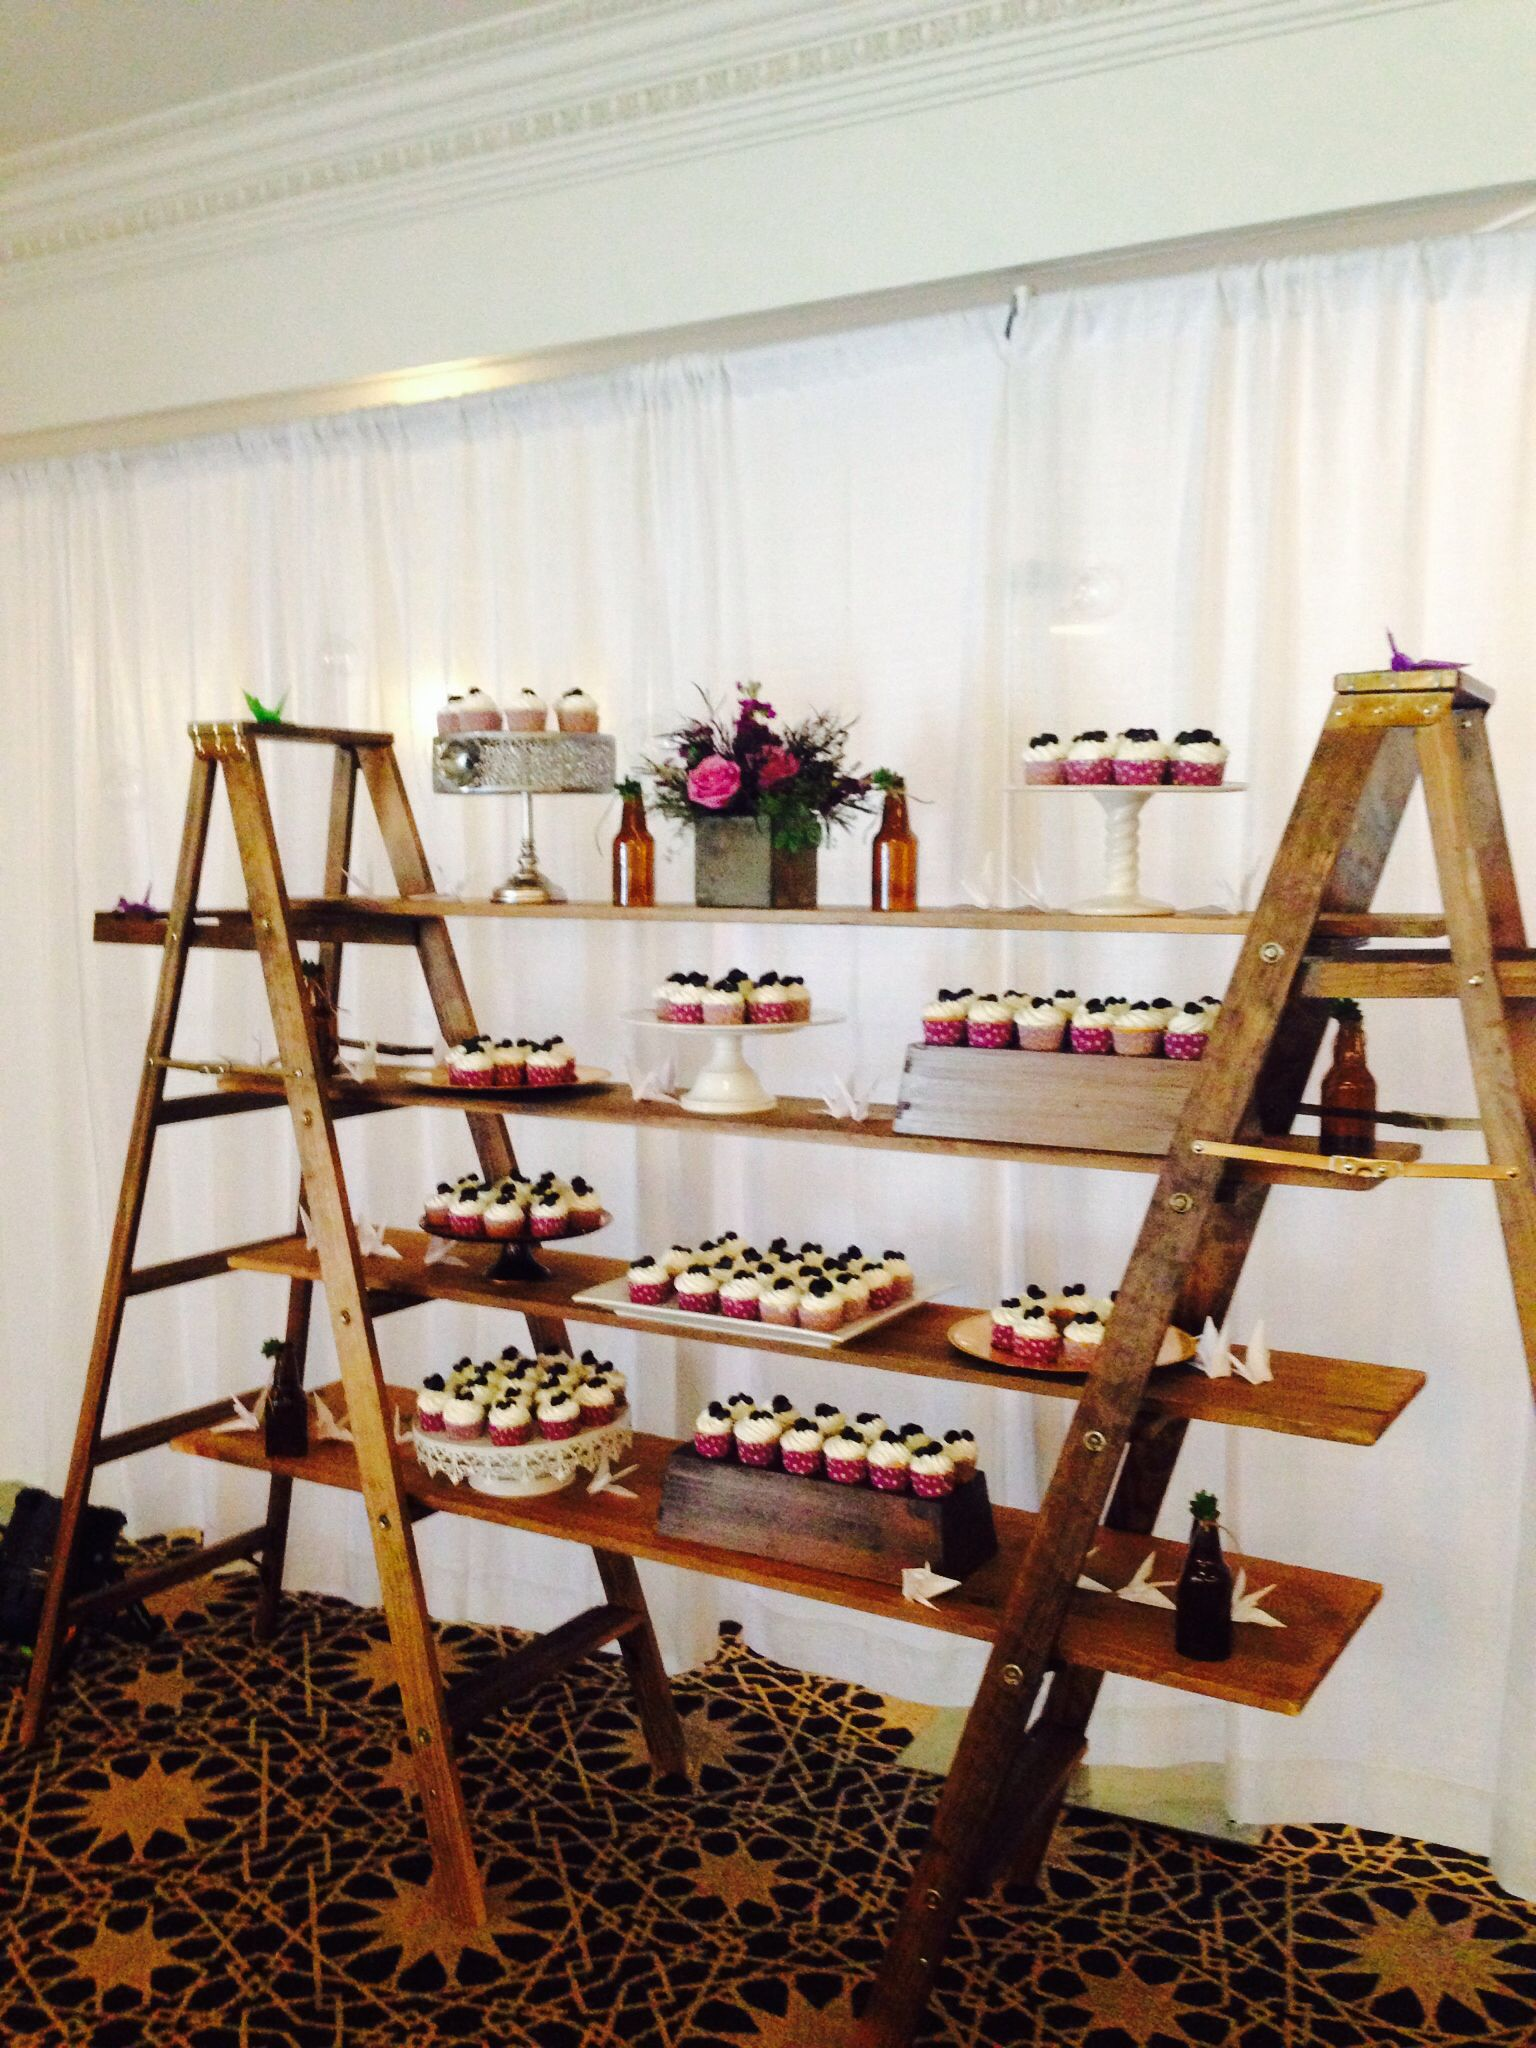 Cupcake Ladder!! A fun way to display your deserts. Ladder shelves by Farm